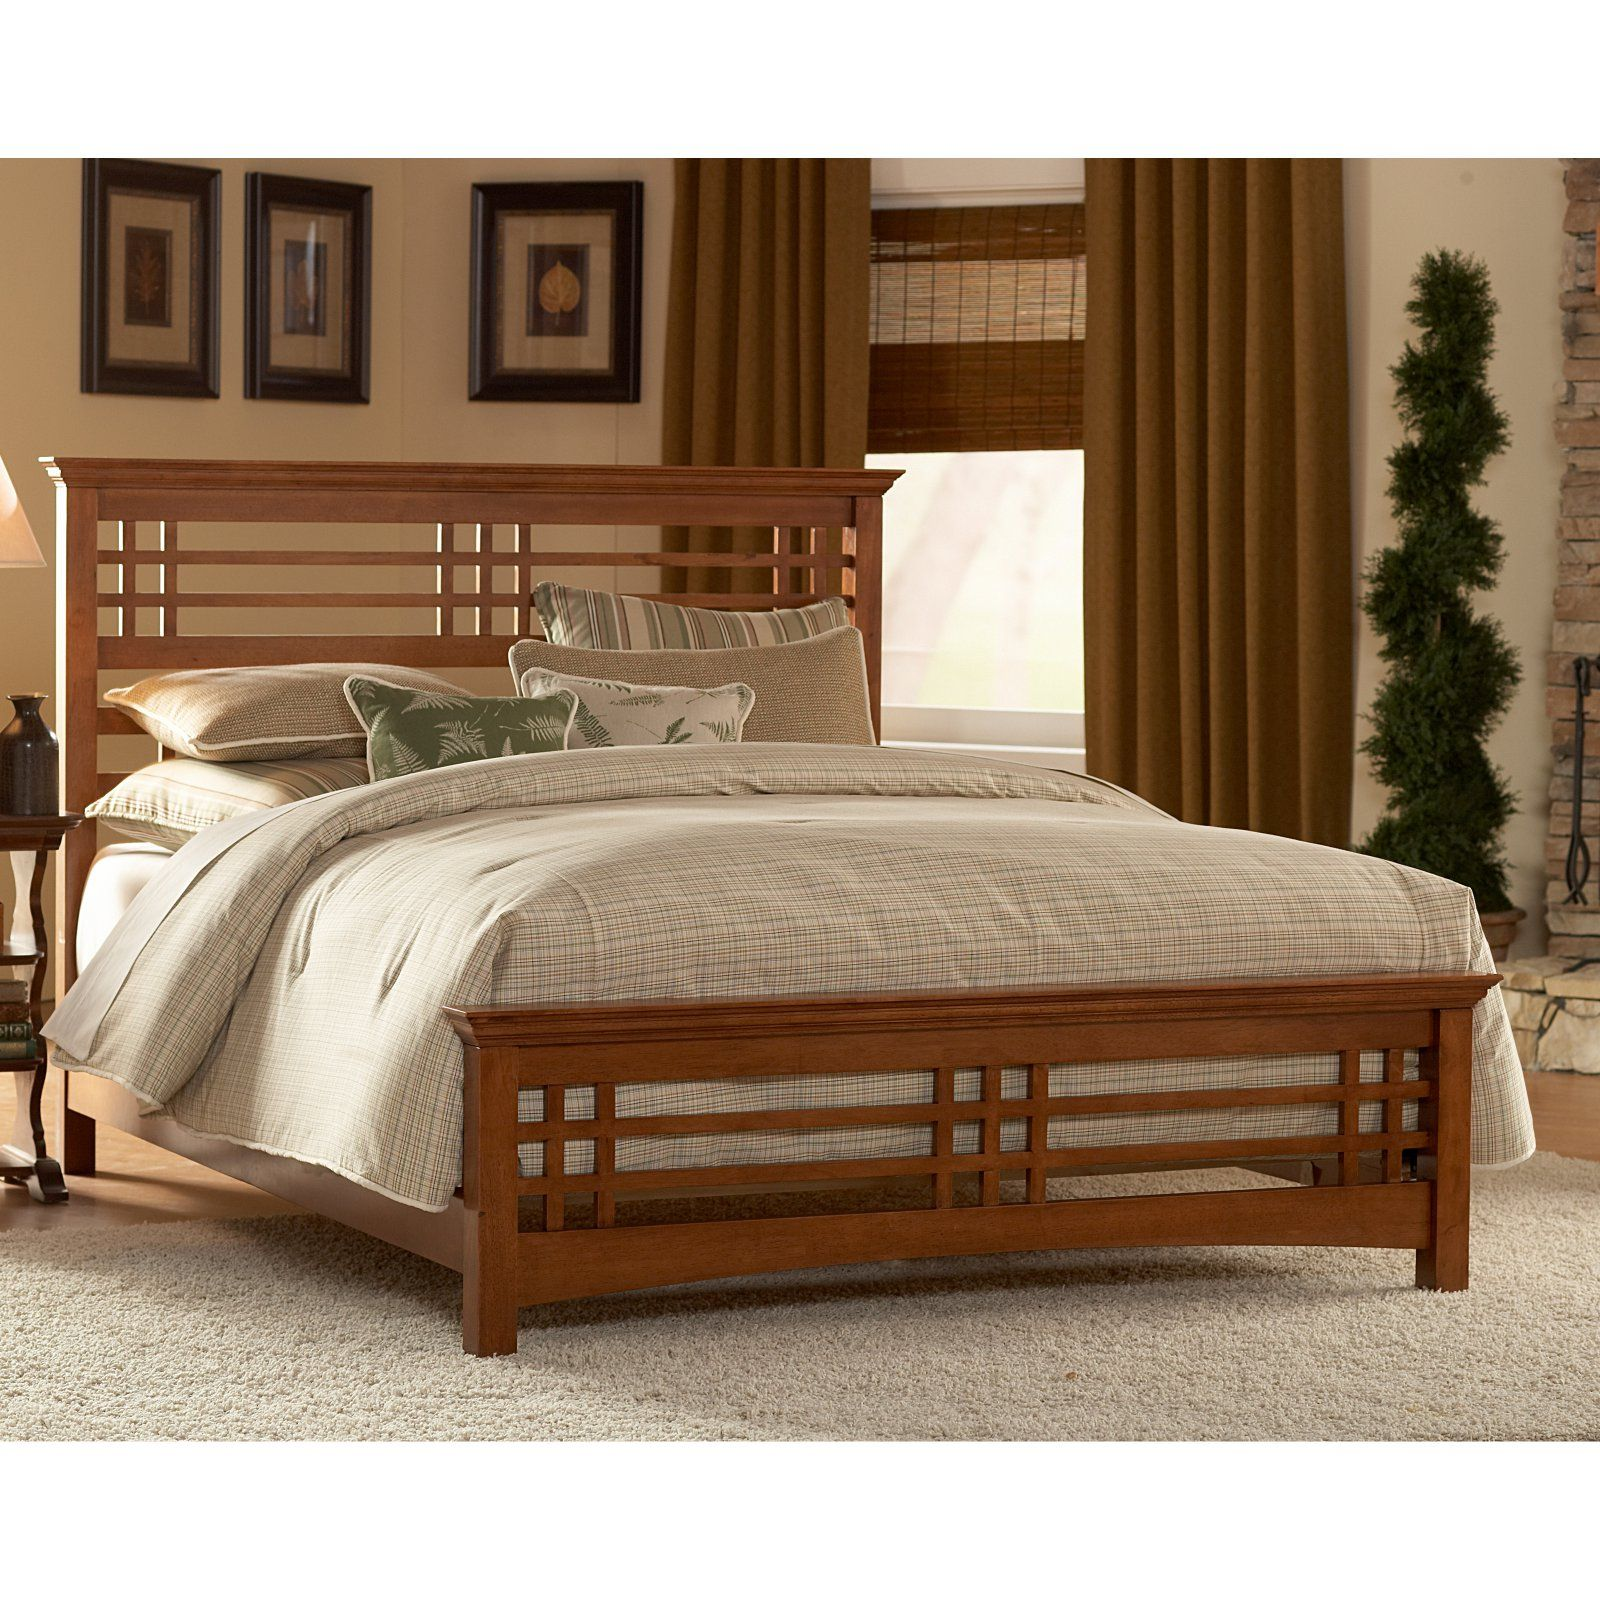 Fashion Bed Group Avery Bed, Size King Bed styling